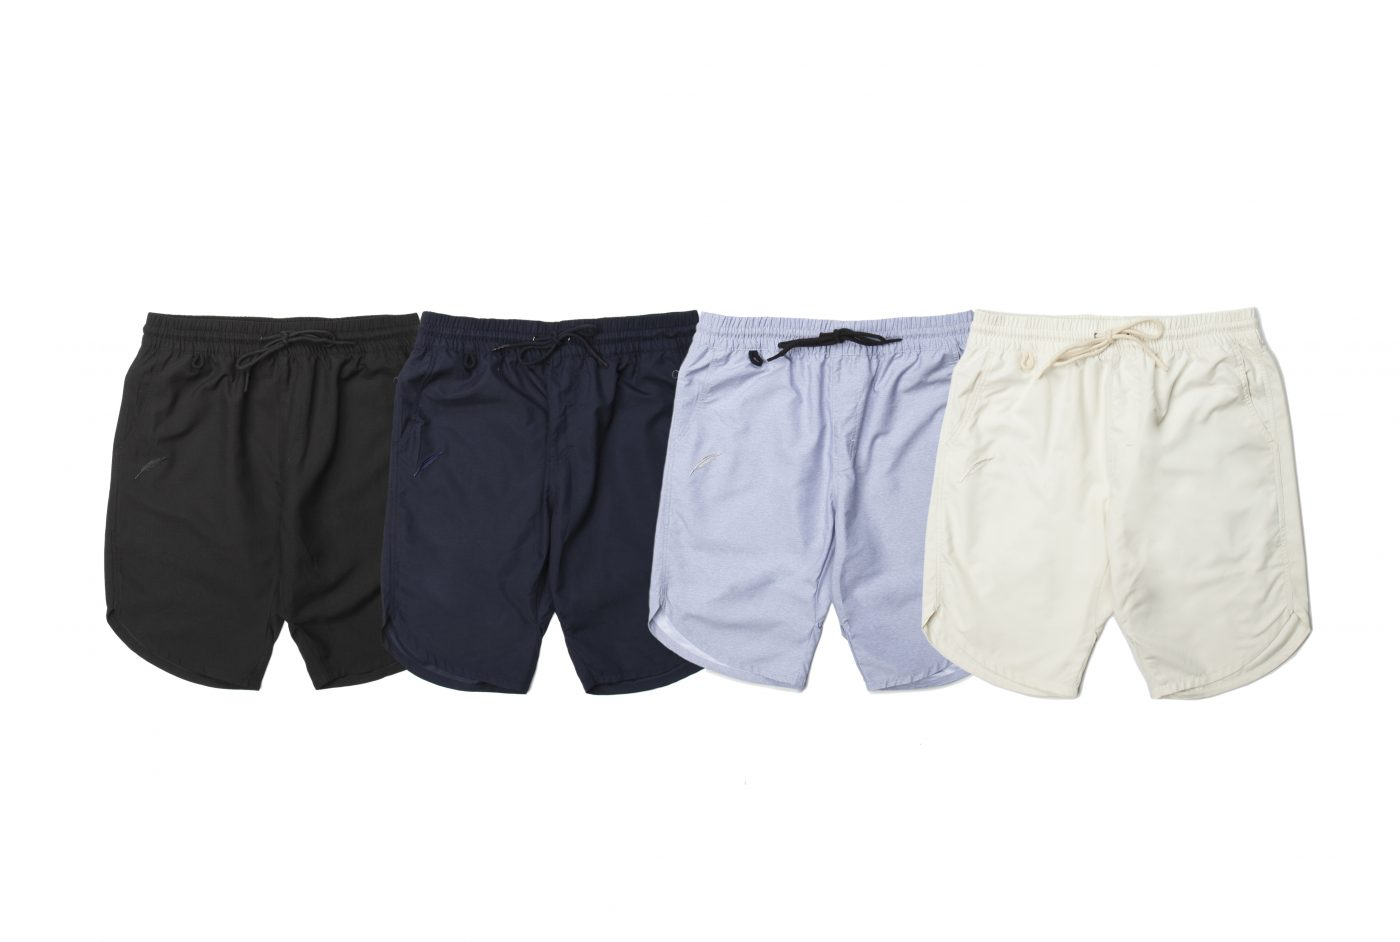 Publish Brand_Taku Boardshorts_group